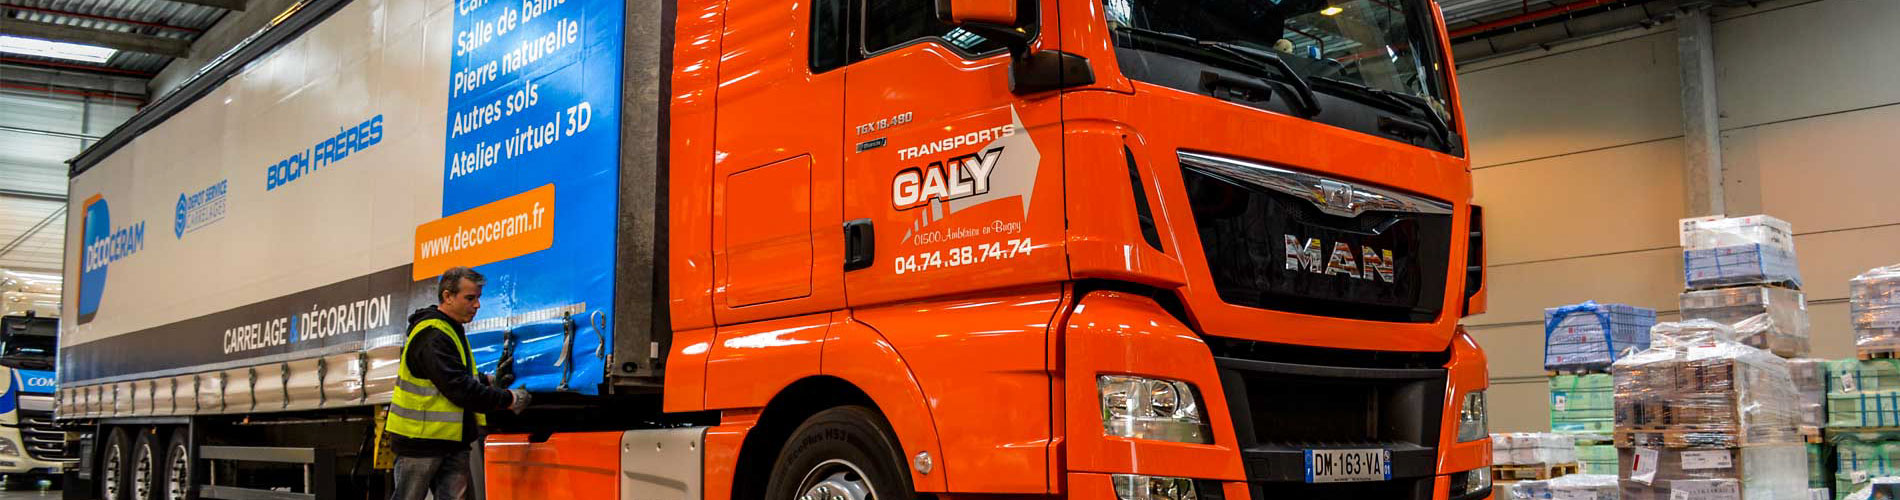 Transports Galy